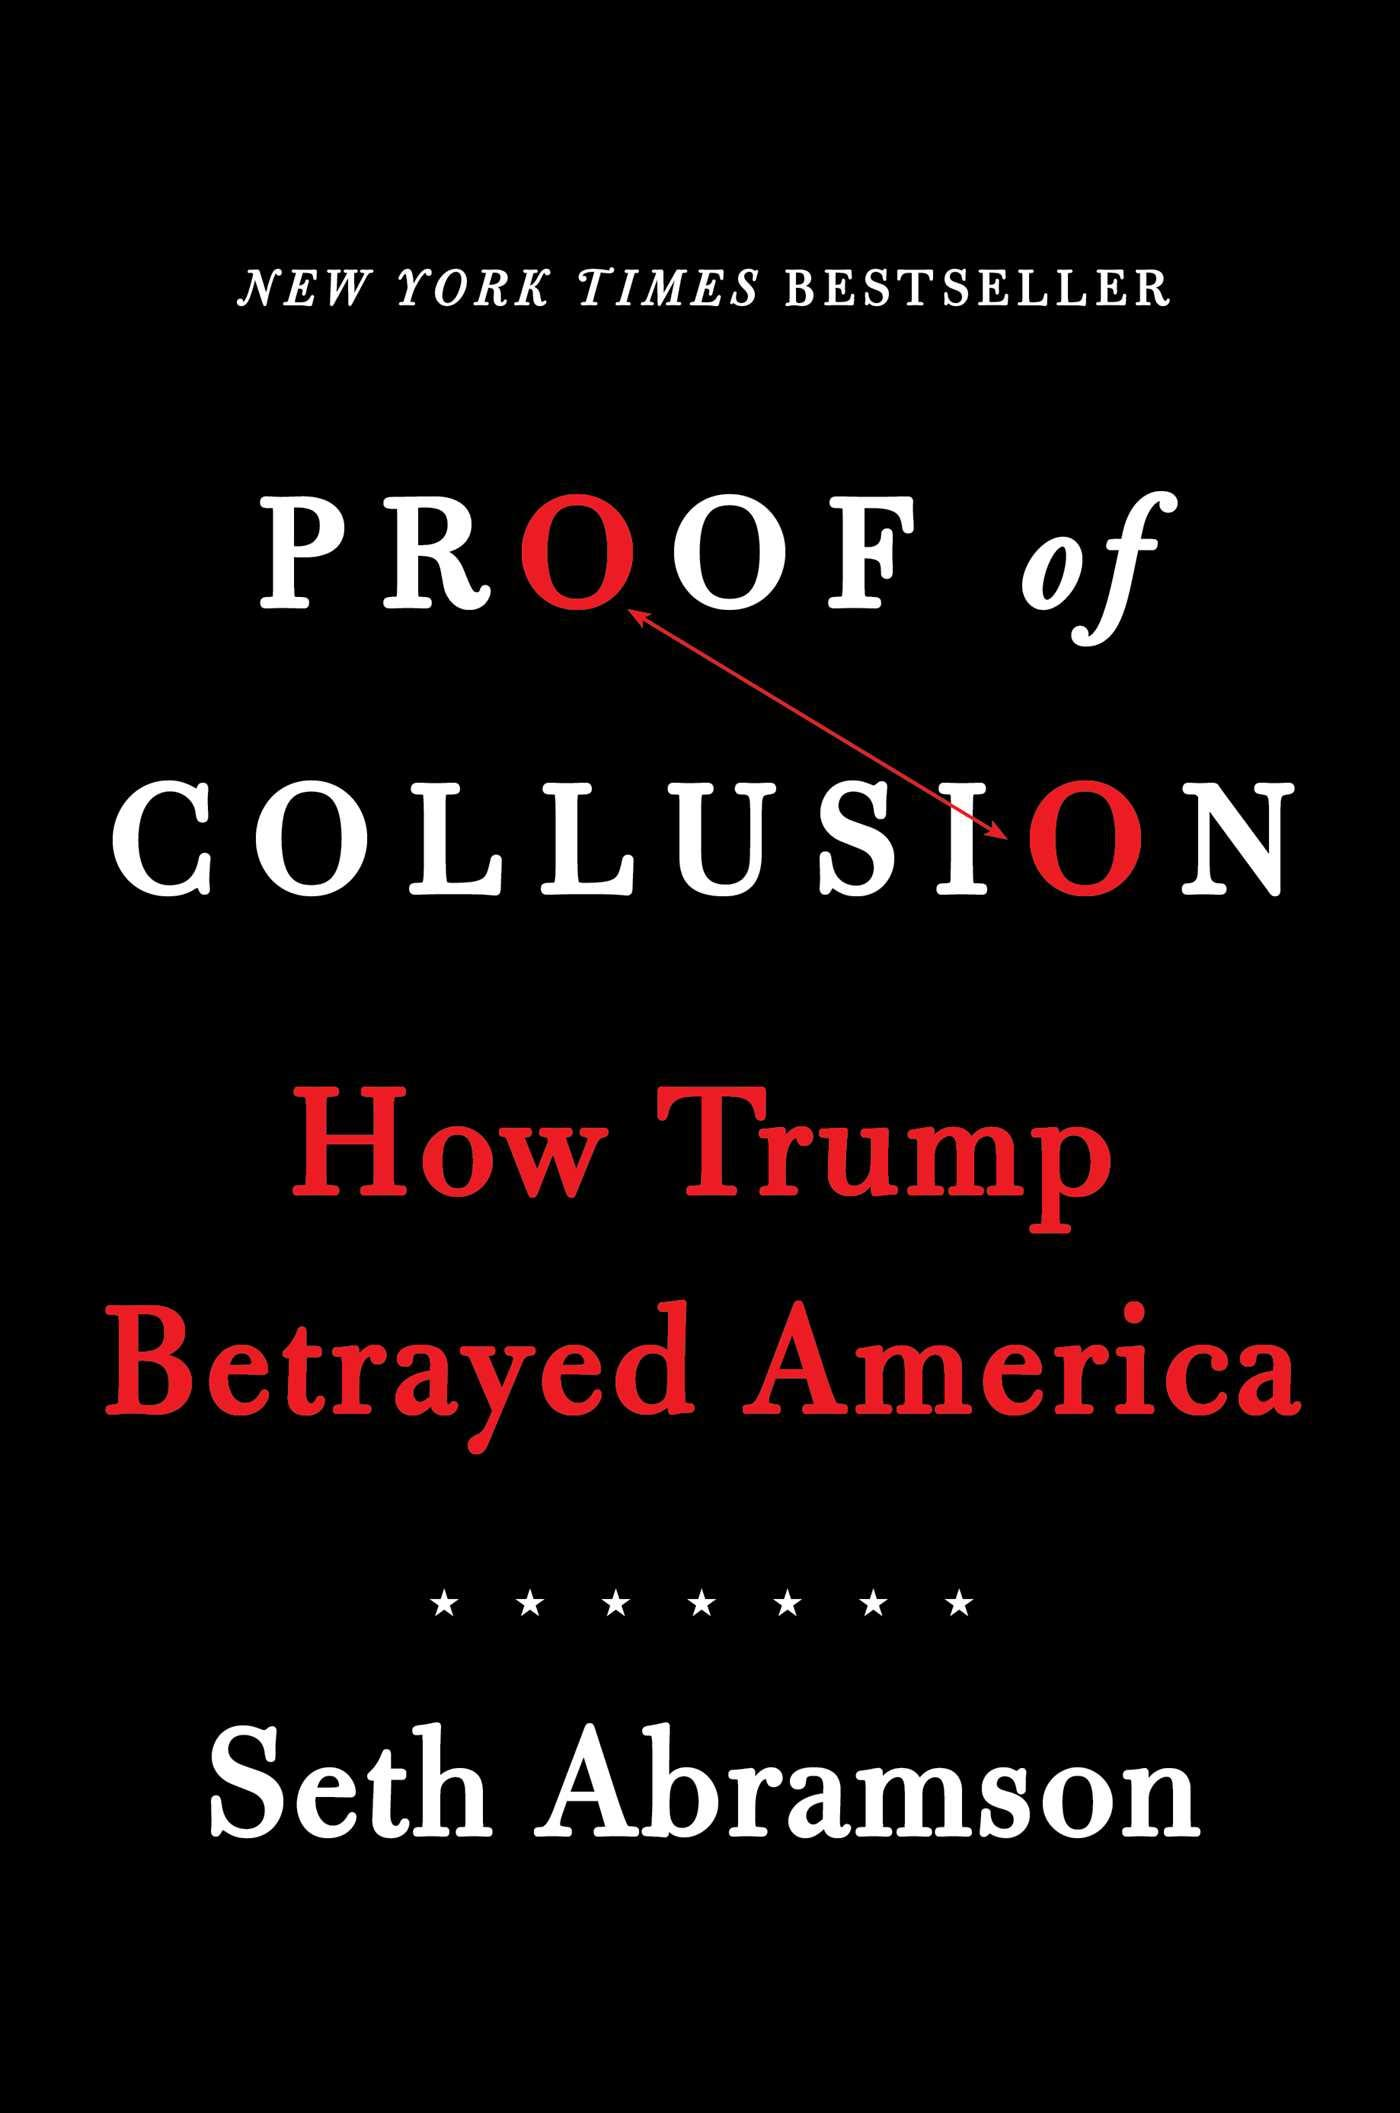 Image OfProof Of Collusion: How Trump Betrayed America